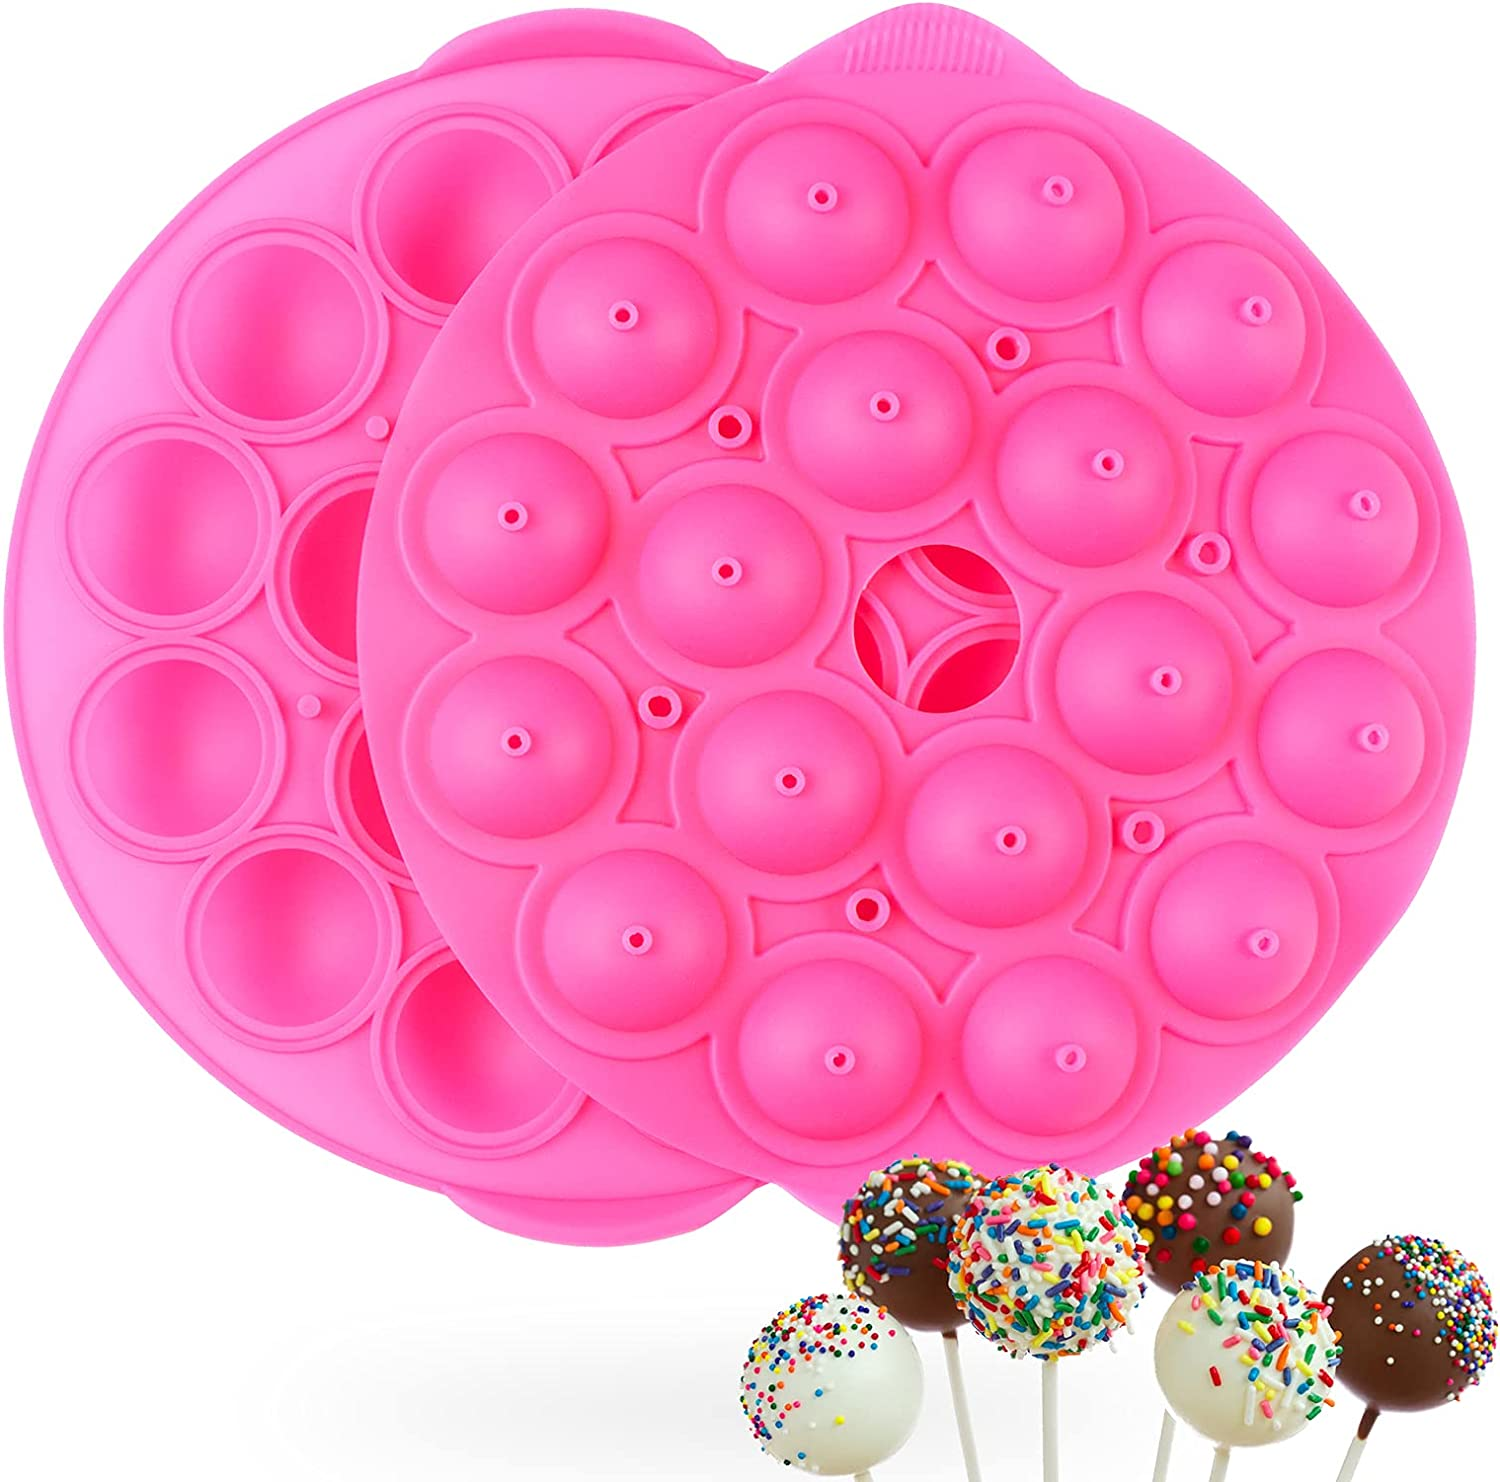 Silicone In stock Cake Pop Mold Popular brand - Cavities 18 Lollipop for